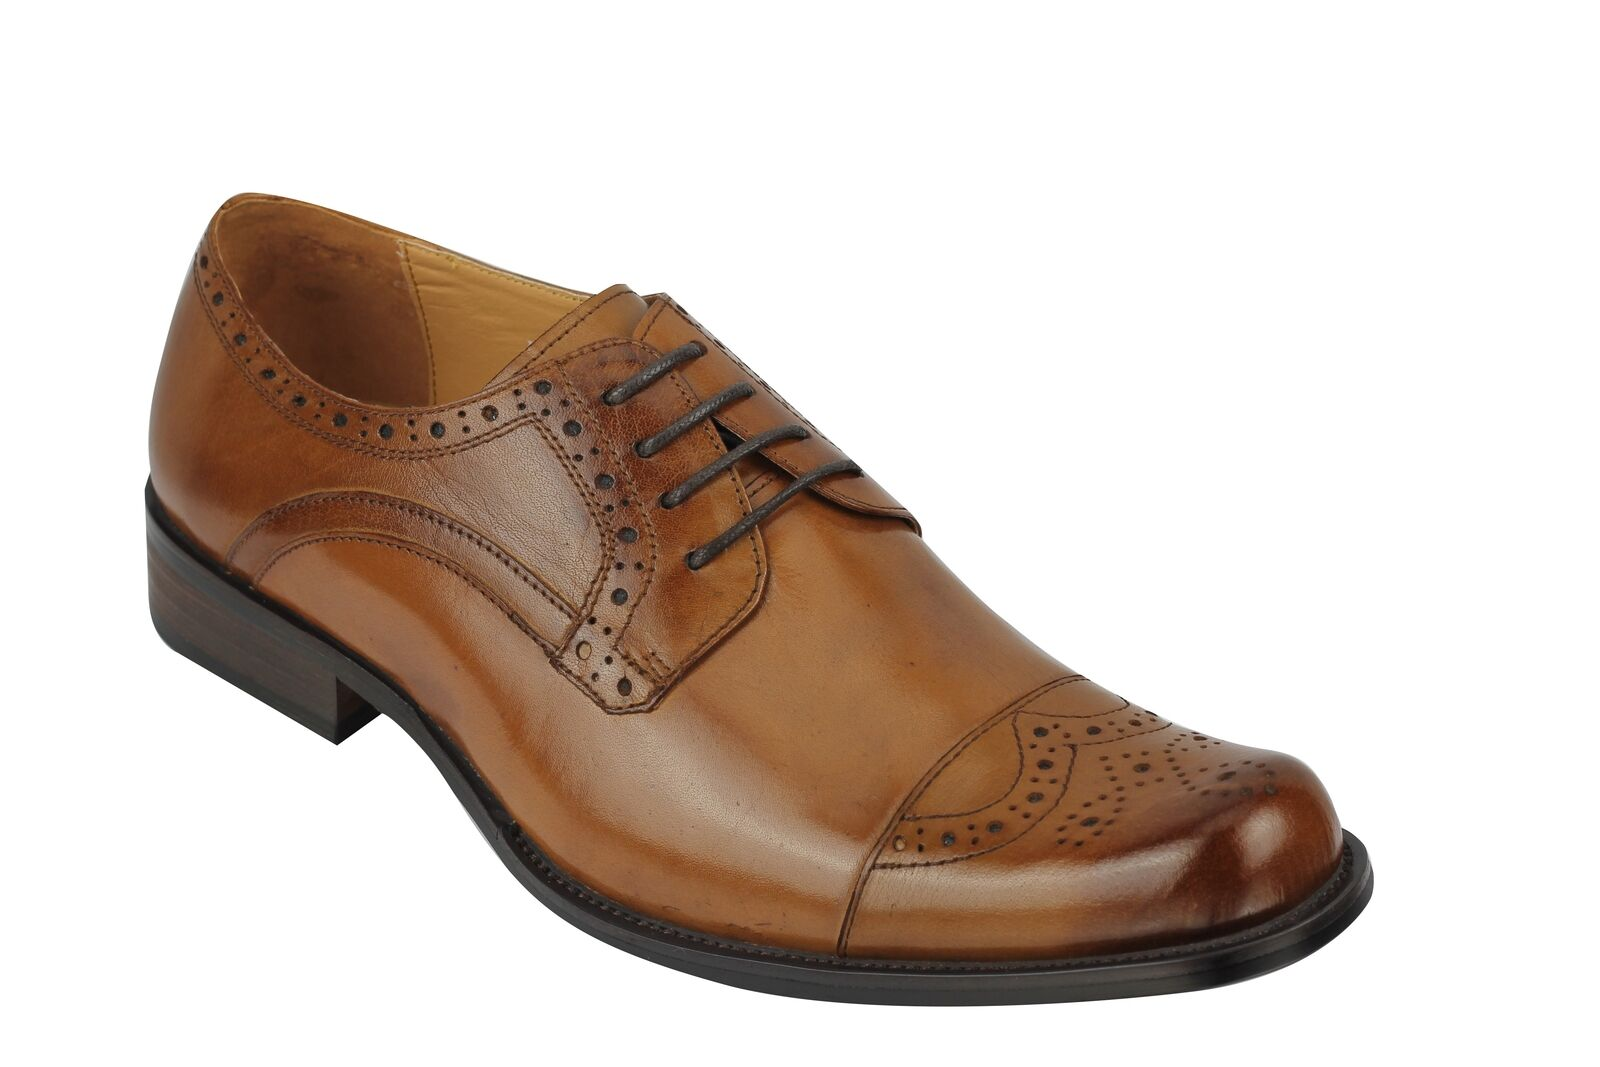 New Mens Vintage Polished Real Leather Tan Lace up shoes Smart Formal Brogue